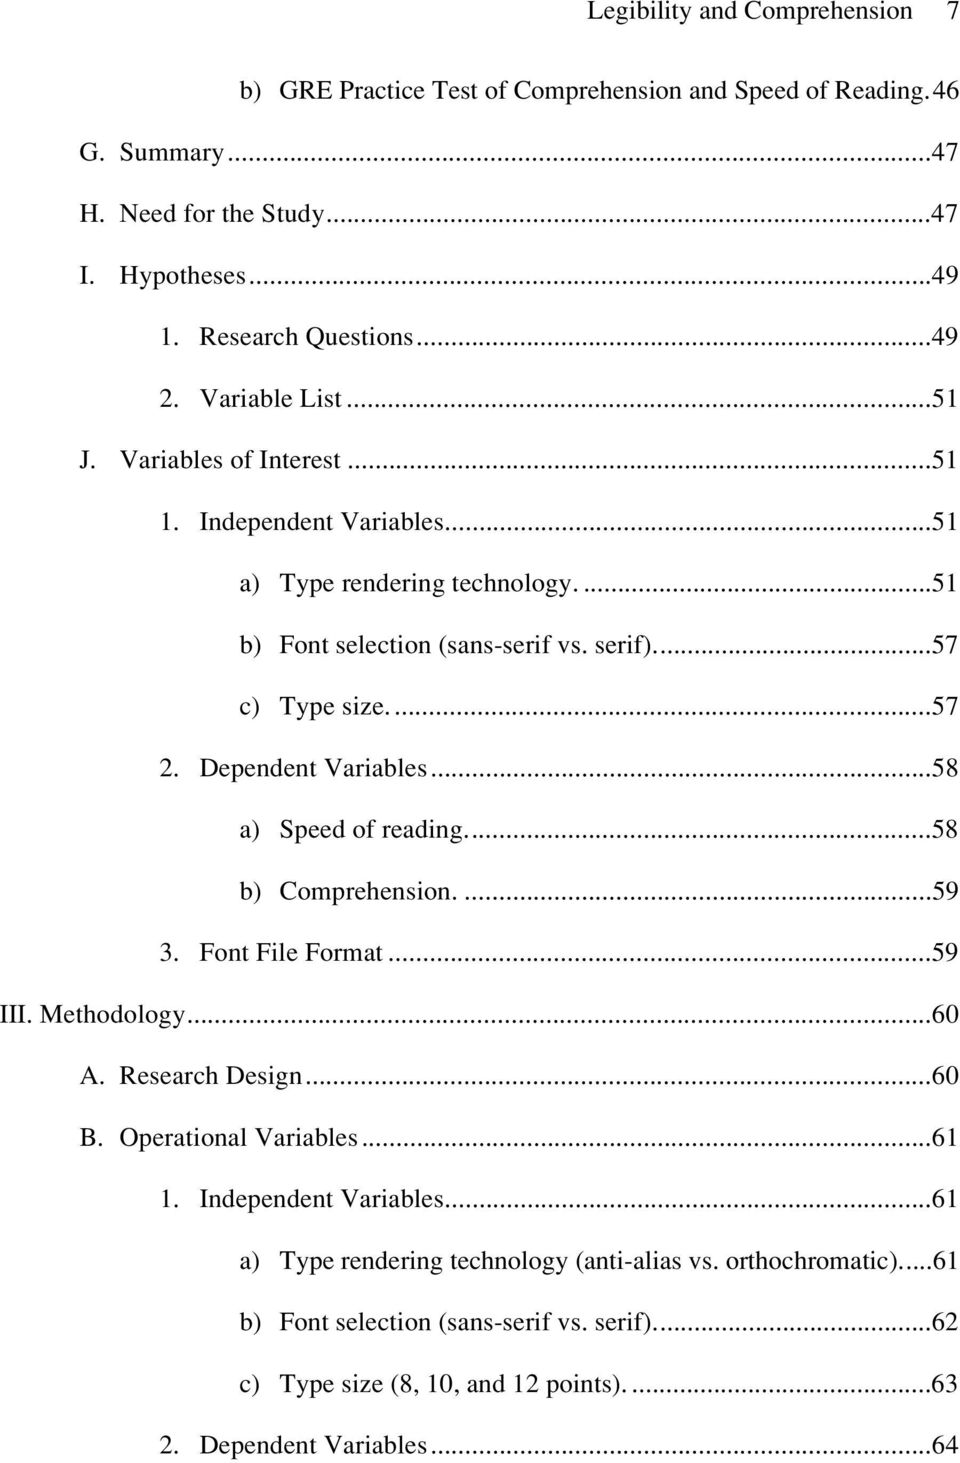 Dependent Variables...58 a) Speed of reading...58 b) Comprehension....59 3. Font File Format...59 III. Methodology...60 A. Research Design...60 B. Operational Variables...61 1.